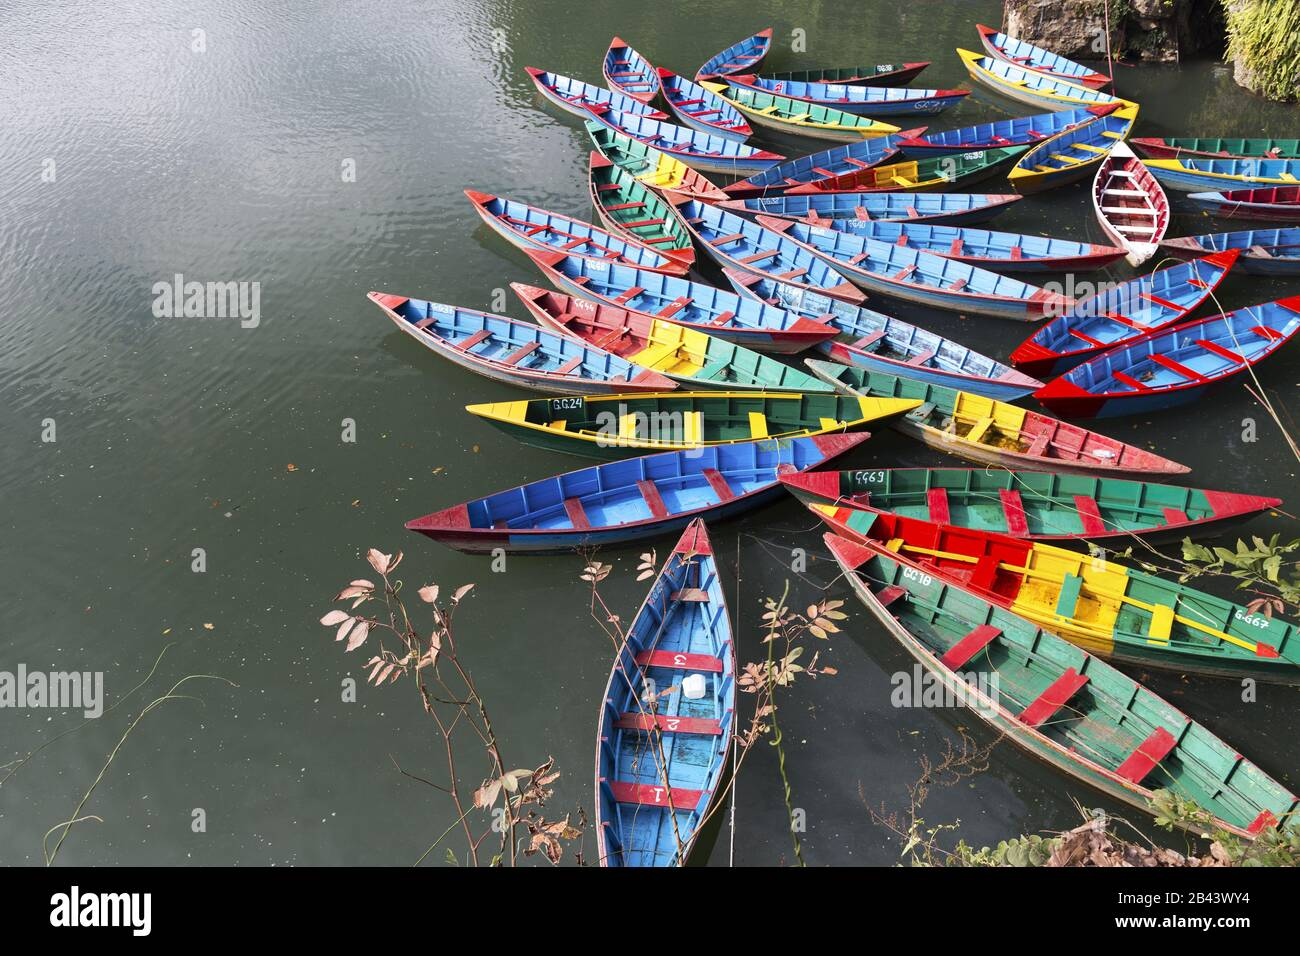 group-of-multi-colored-fishing-boats-on-